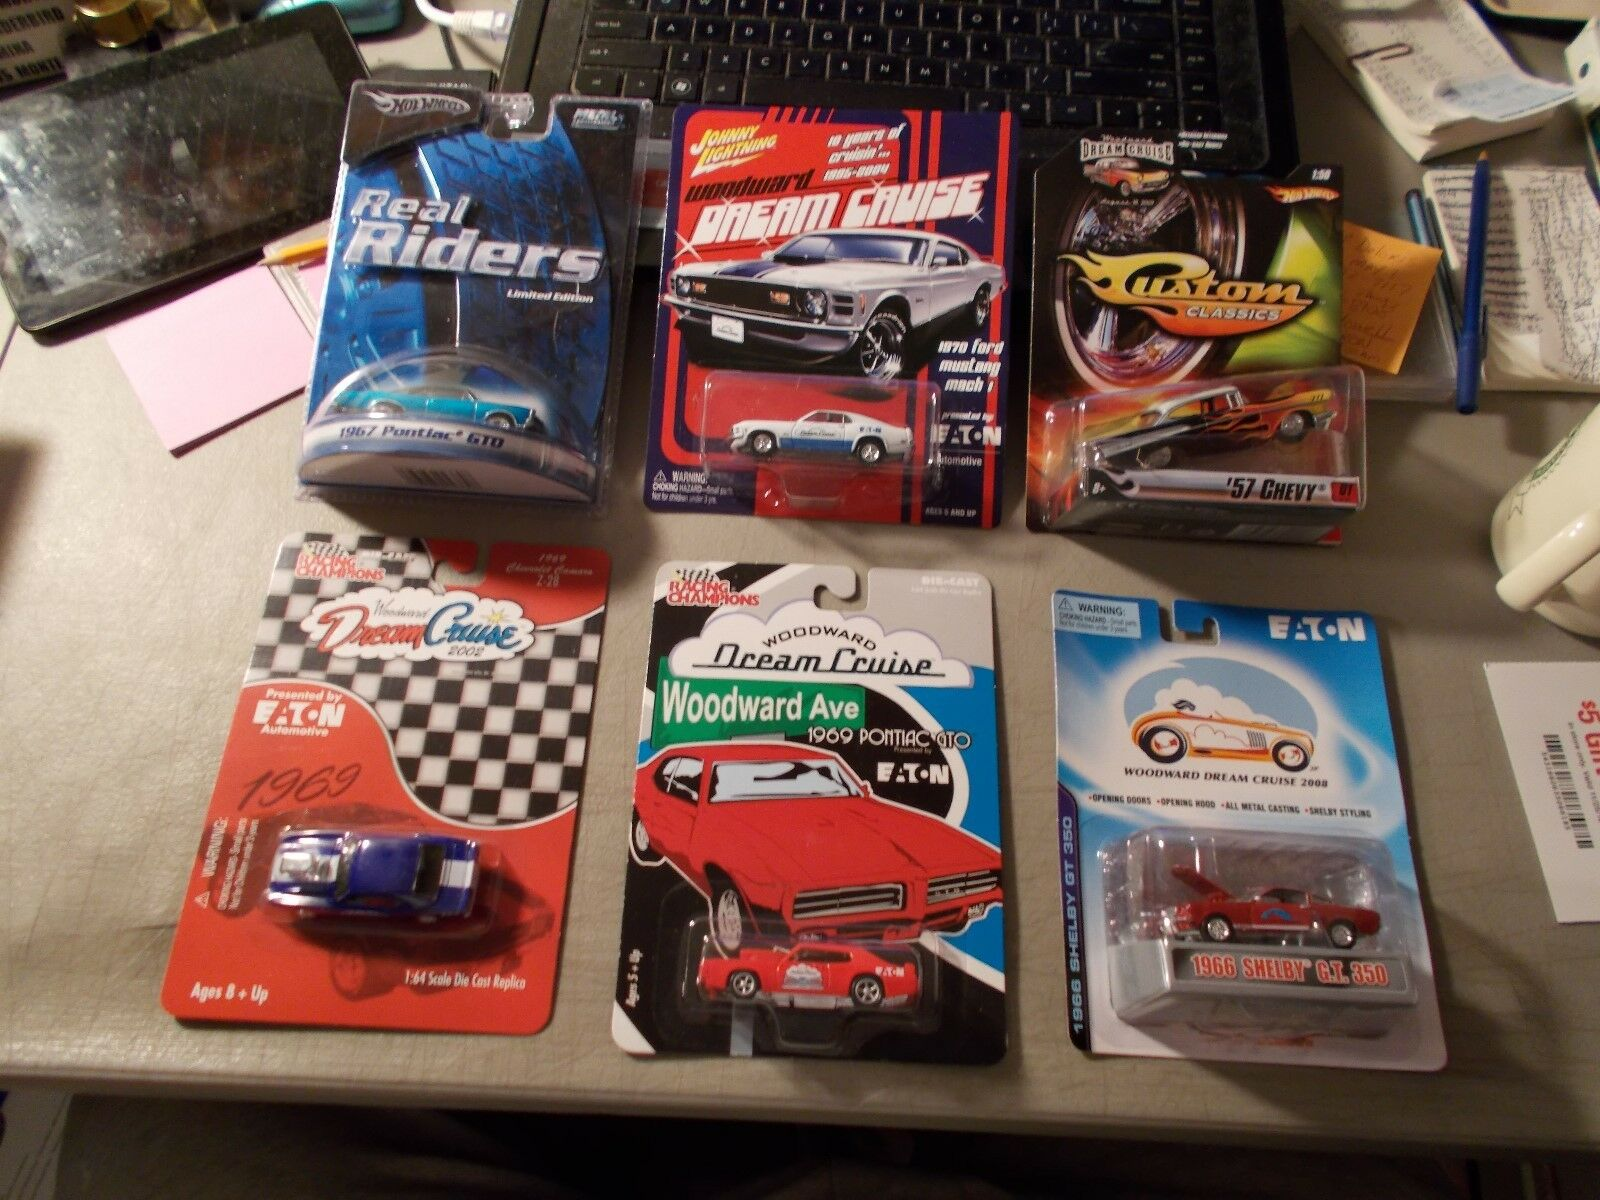 LOT OF 6 DIFFERENT WOODWARD DREAN CRUISE 1-HOT WHEELS 2-RACING CHAMPS 1-J.L. ++